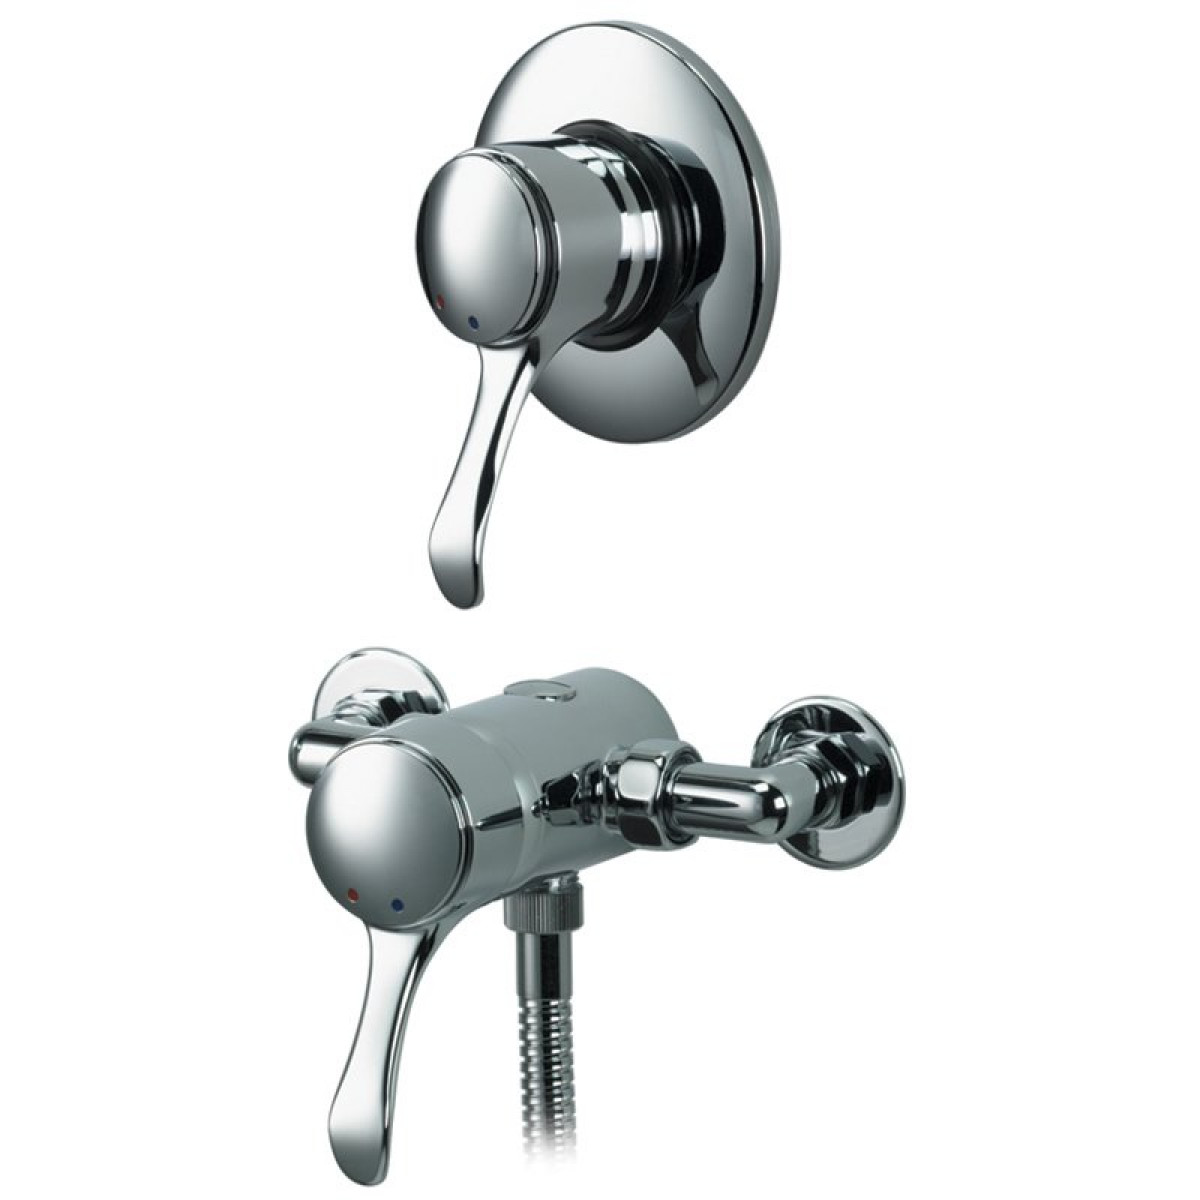 Marflow Consort Manual Shower Valve (Concealed or Exposed) | C72